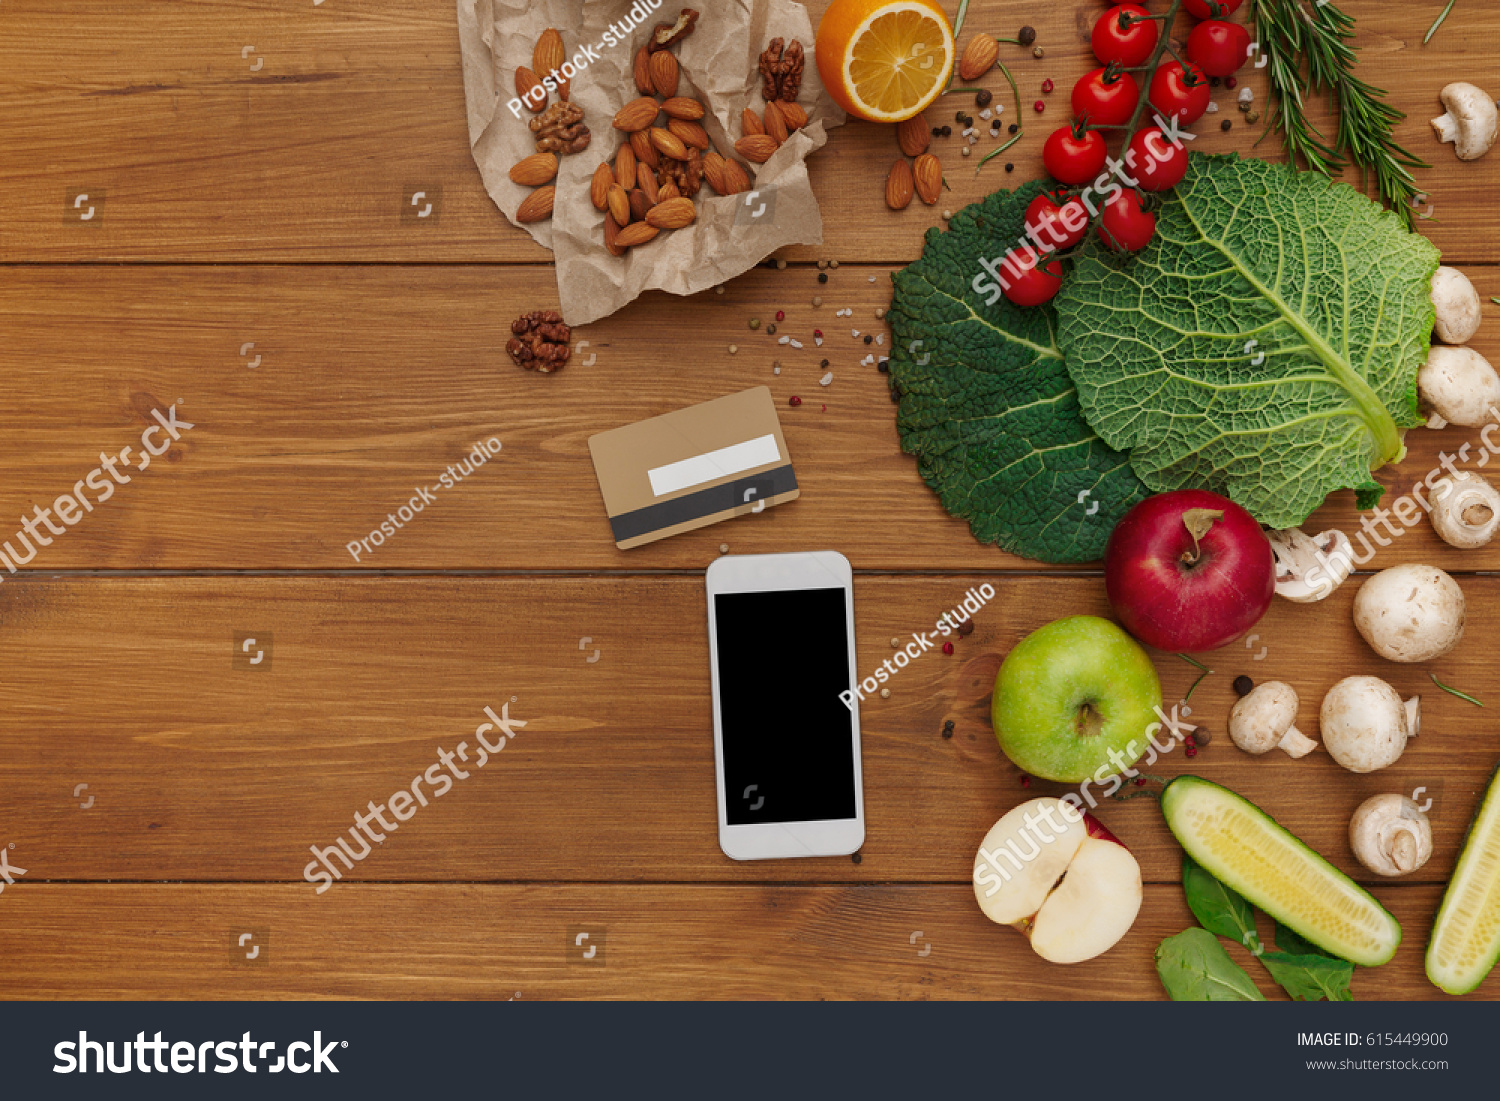 Can i buy healthy food online - Healthy Food Grocery Online Shopping With Credit Card Fresh Organic Vegetables And Fruits On